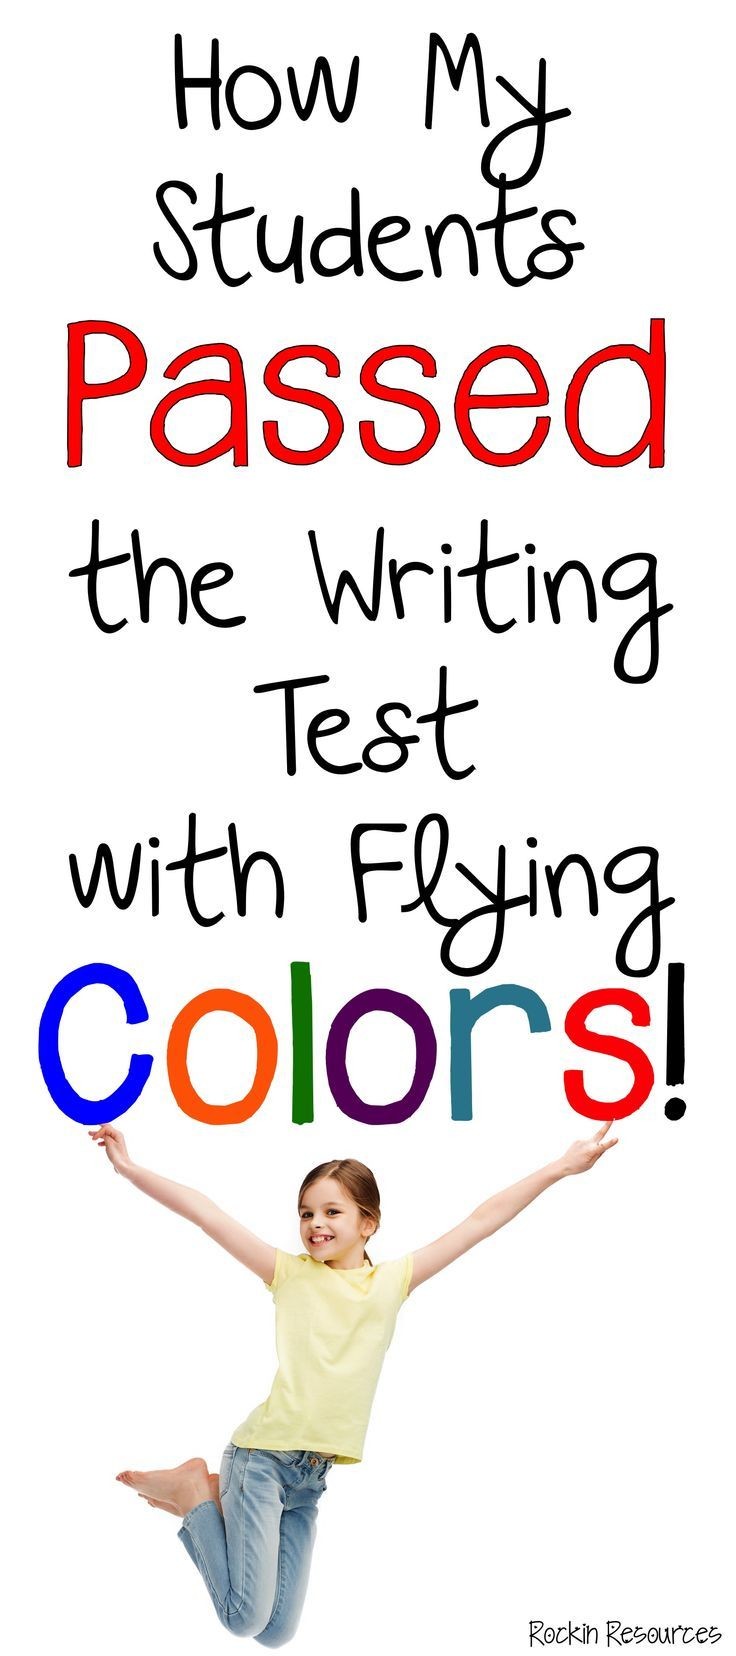 Awesome ideas to teach writing AND keep your students highly motivated to write AND PASS THAT TEST!